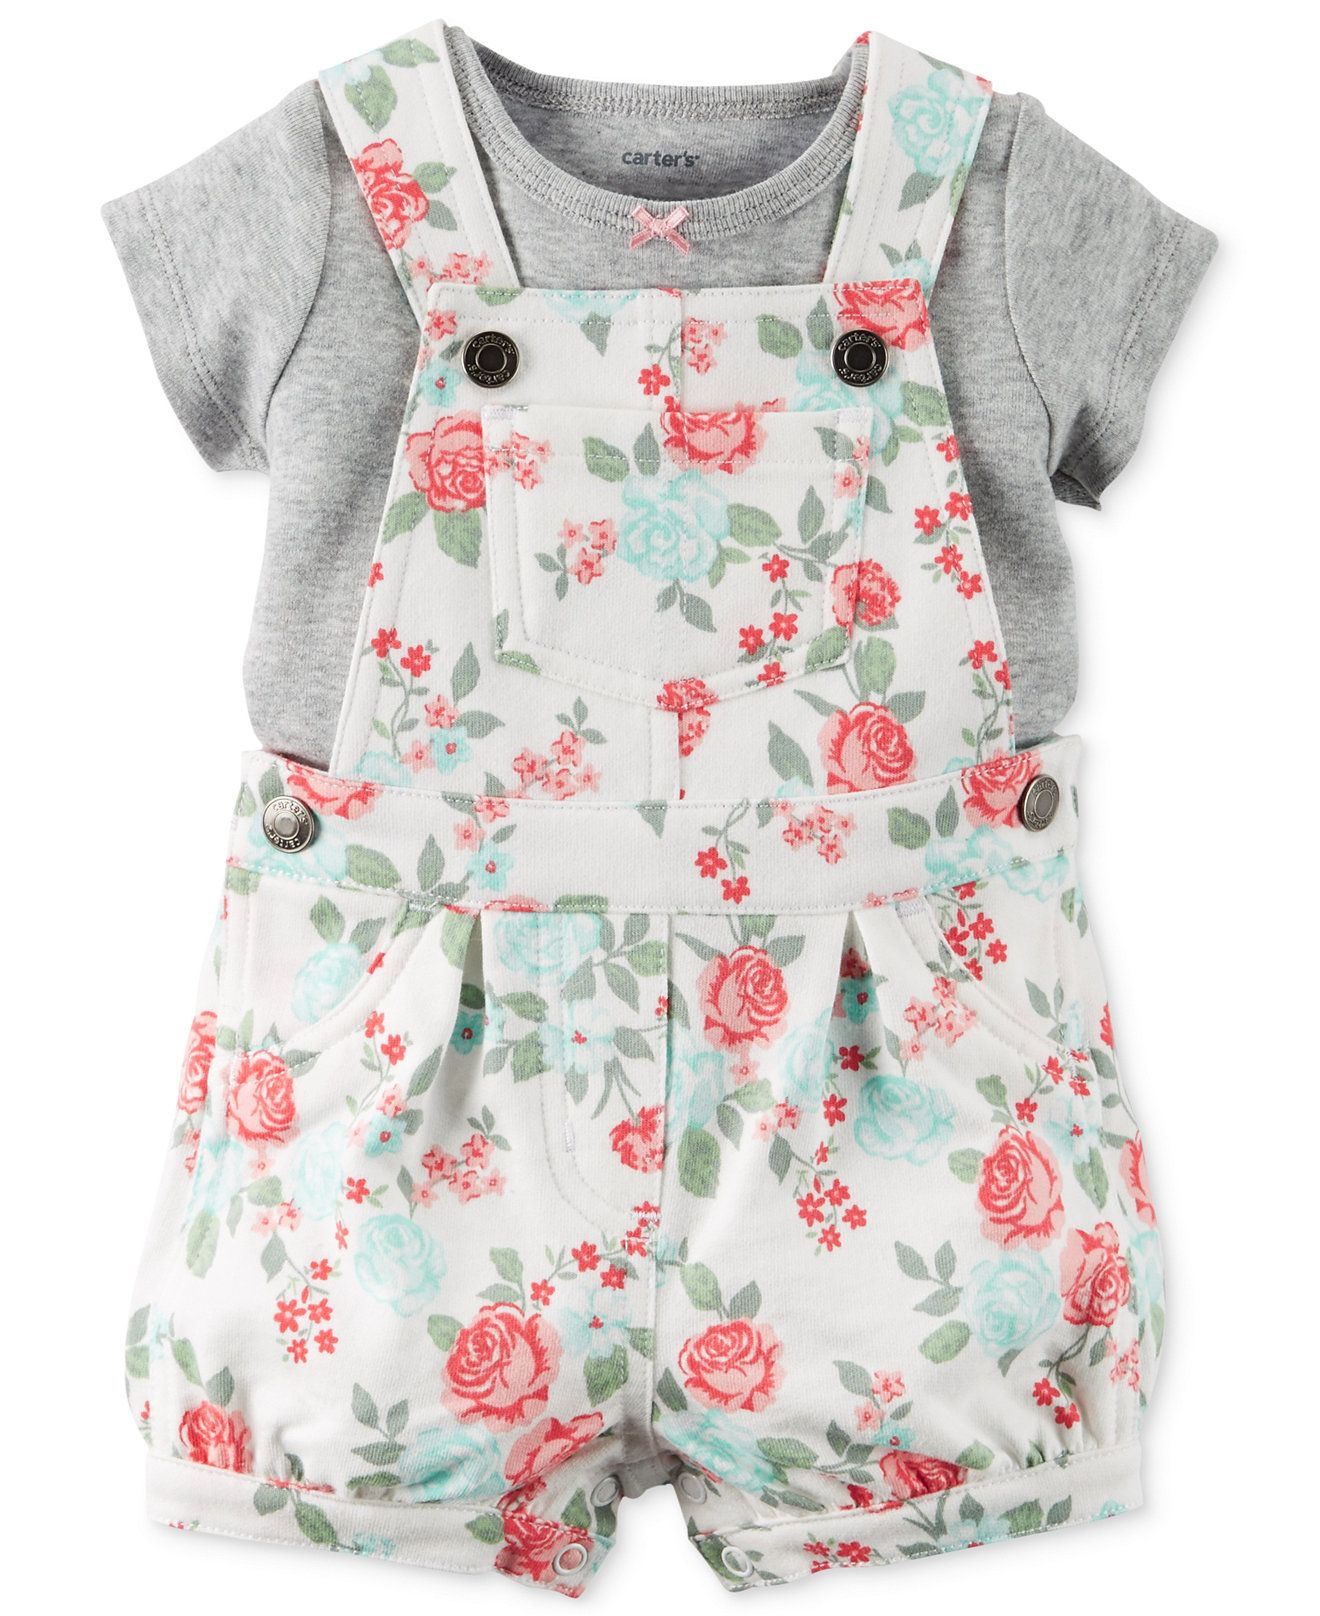 336f4eab1b4 Carter s Baby Girls  2-Piece Gray T-Shirt   Rose-Print Shortall Set - Baby  Girl (0-24 months) - Kids   Baby - Macy s